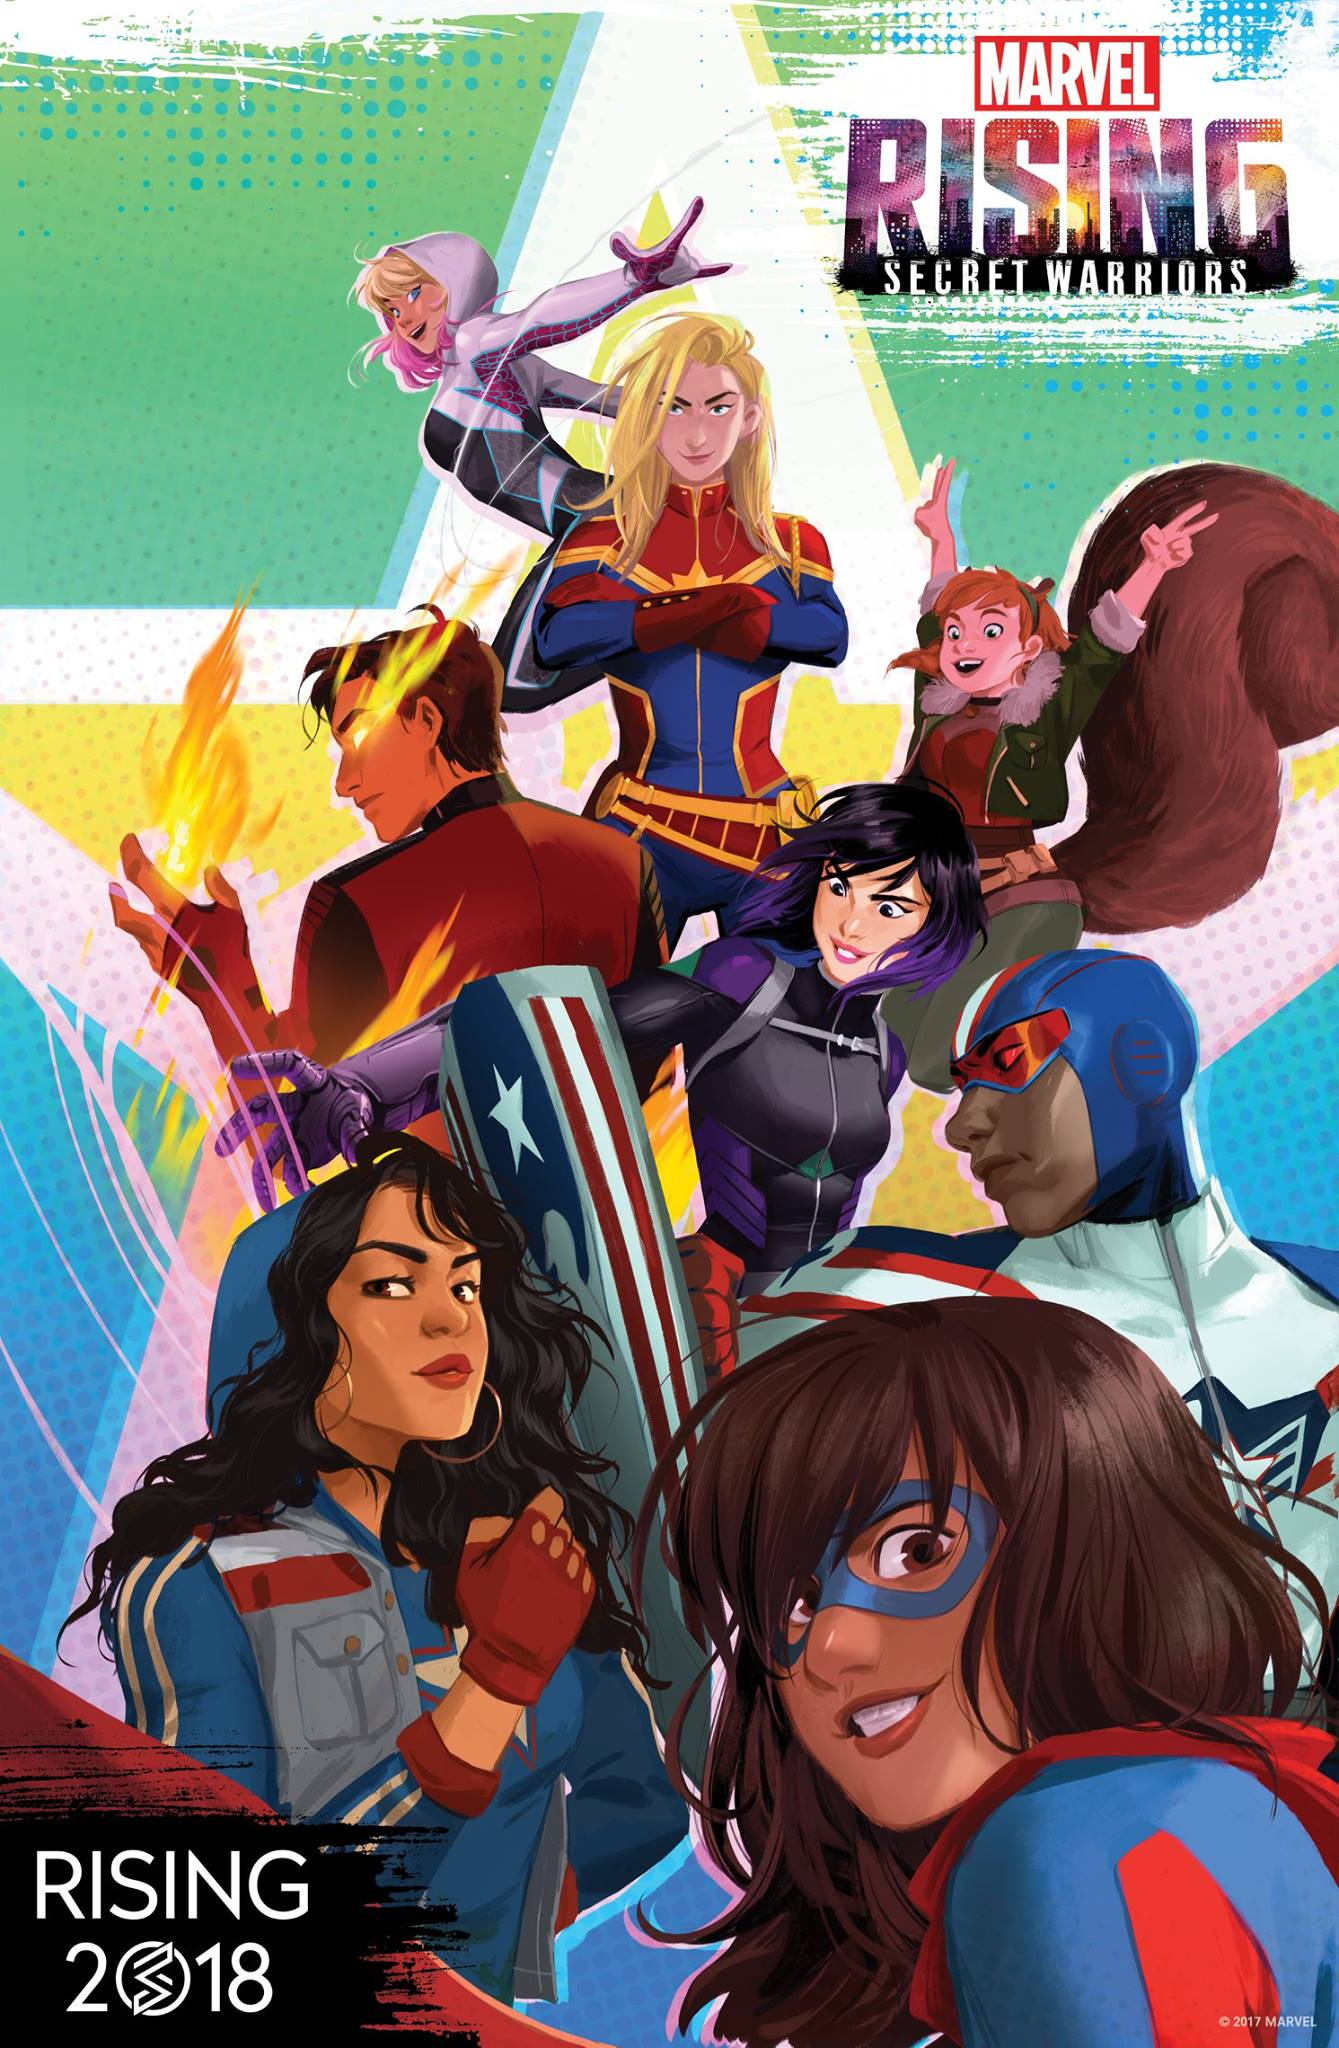 Marvel Rising: Secret Warriors is a major advancement in the diversity of the superheroes our kids have to emulate